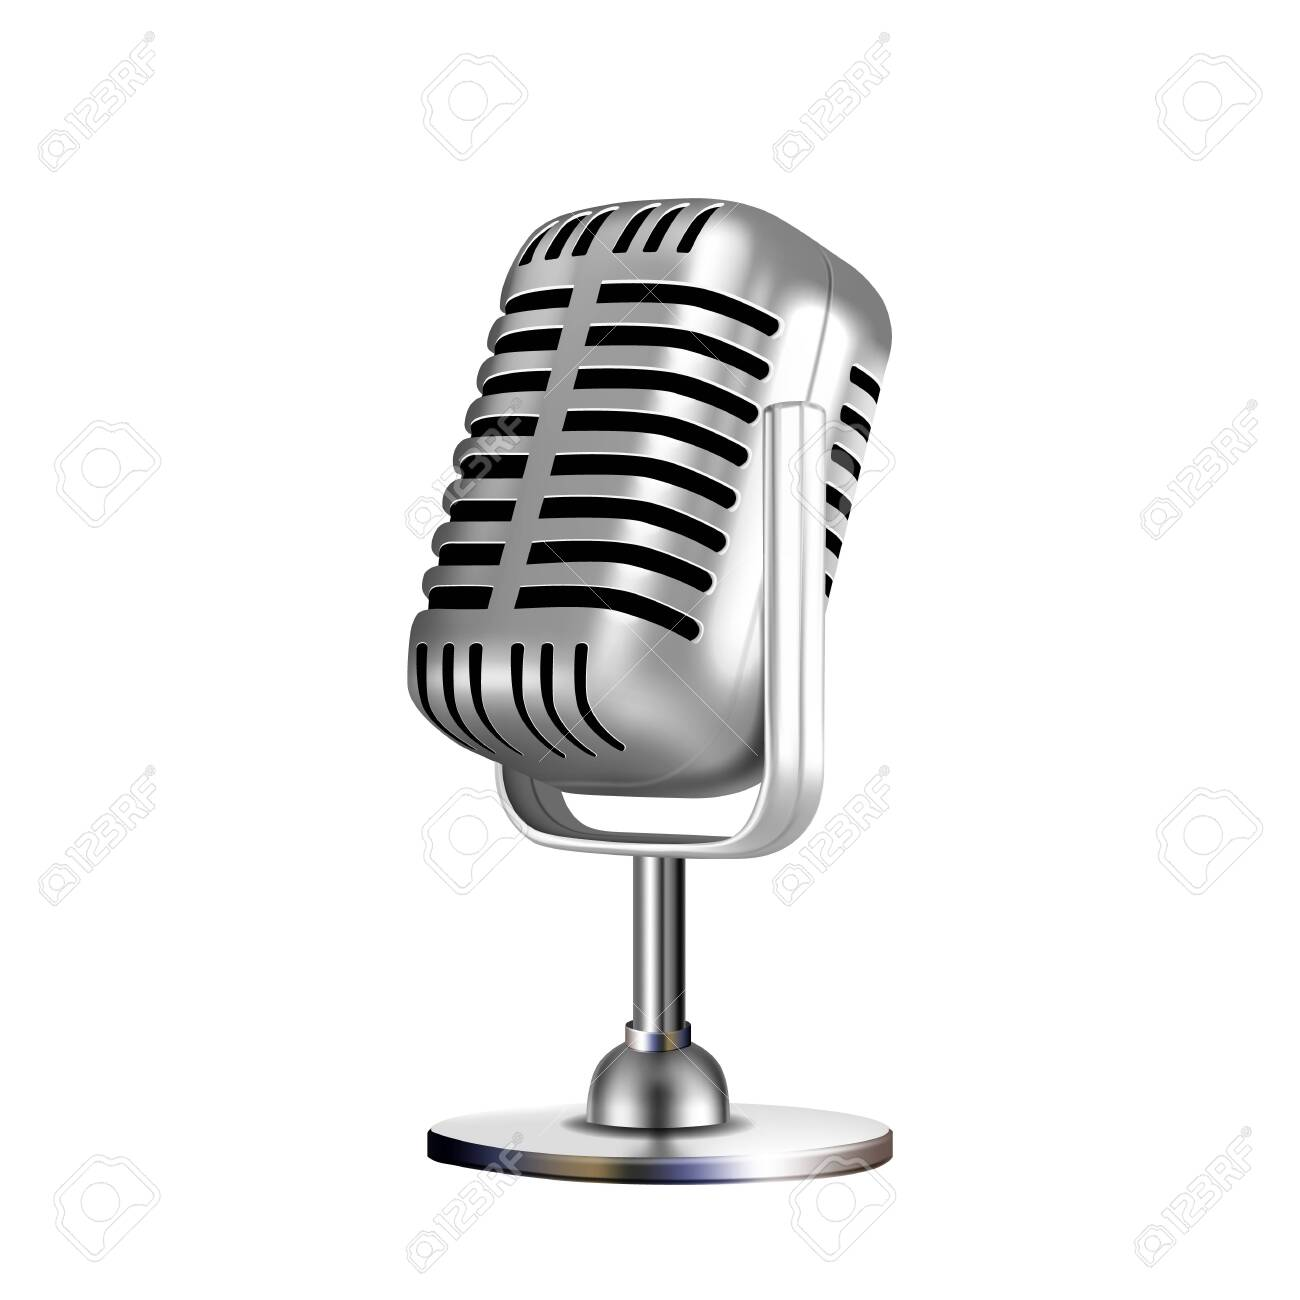 Microphone Retro Vocal Radio Equipment Vector. Audio Microphone For Online Anchorperson Studio Or Karaoke Bar Device. Chrome Silver Color Concept Template Realistic 3d Illustration - 141682828